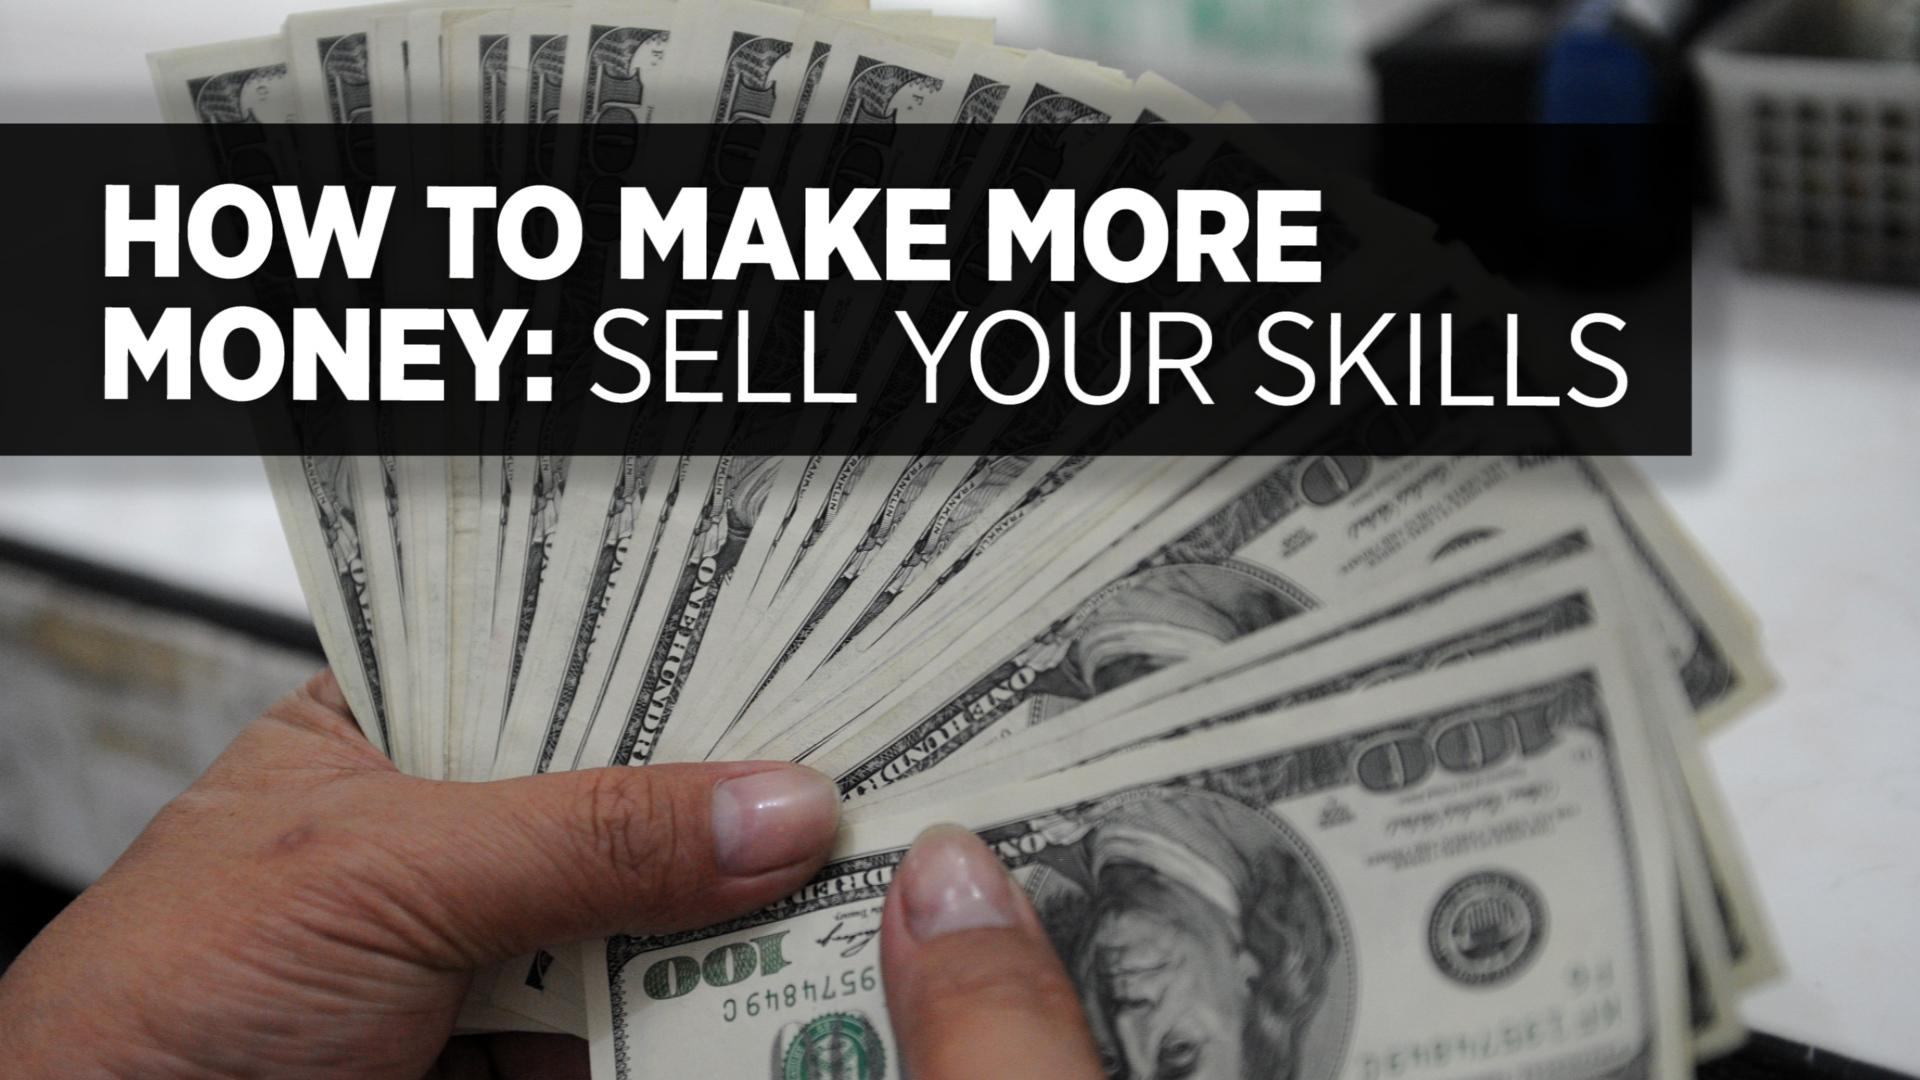 How To Make More Money: Sell Your Skills